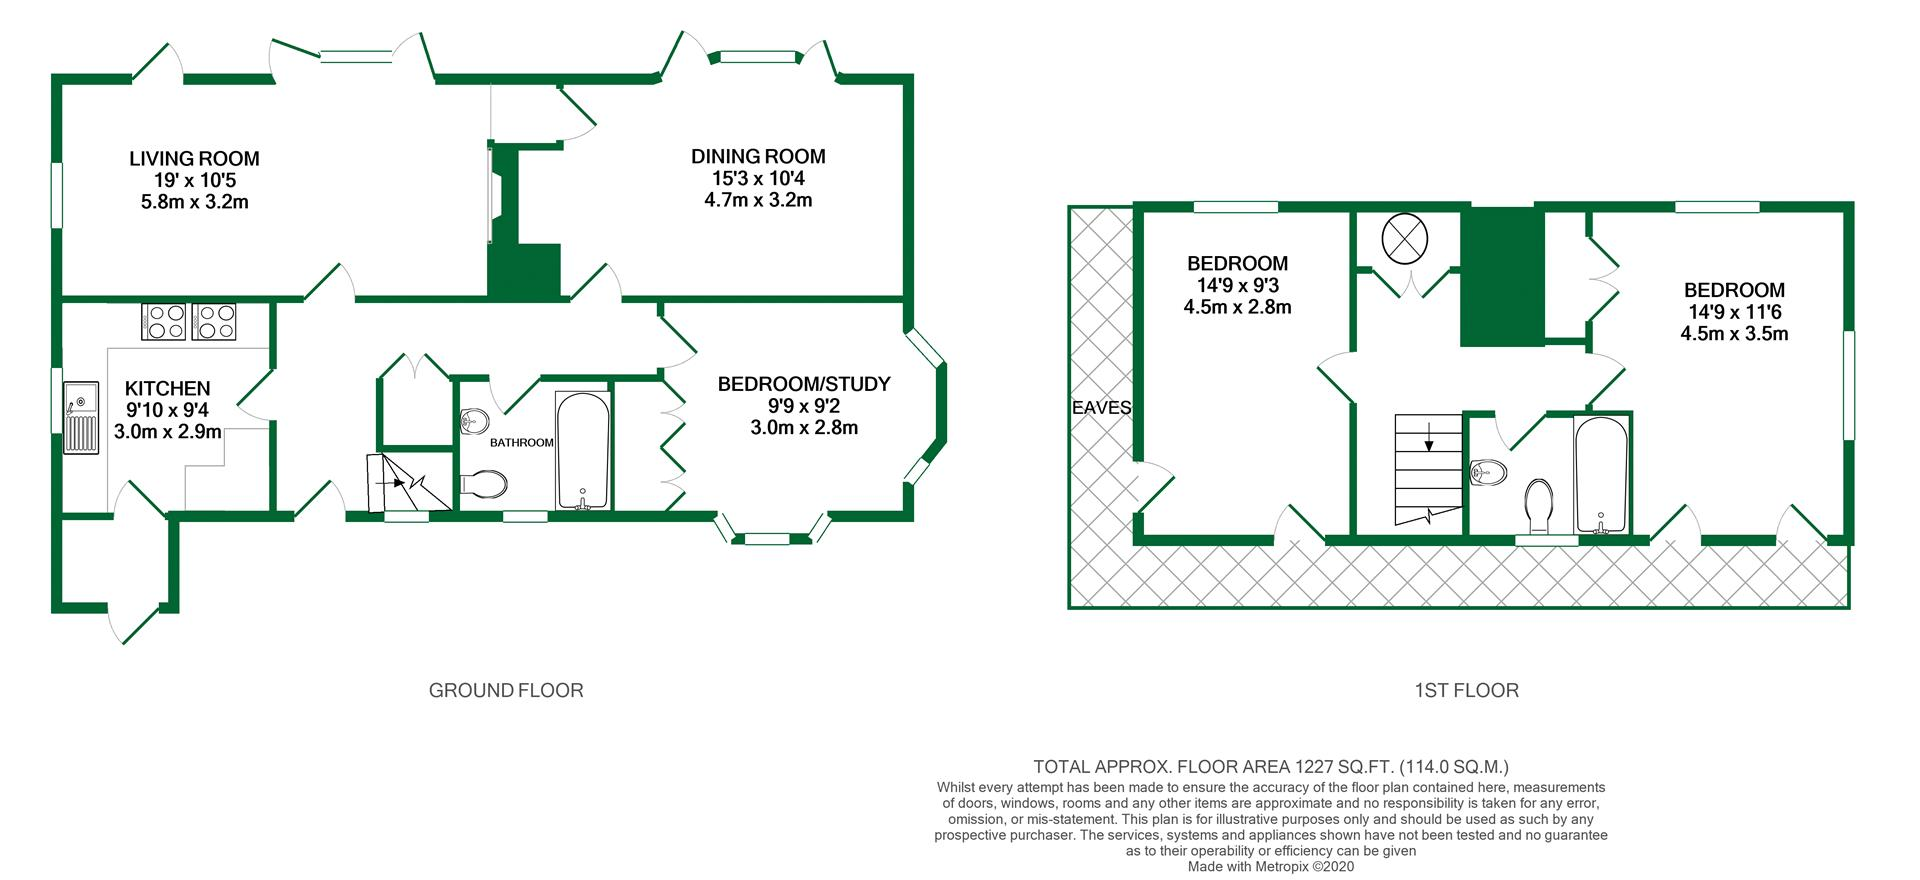 Floorplans For Pound Lane, Sonning, Reading